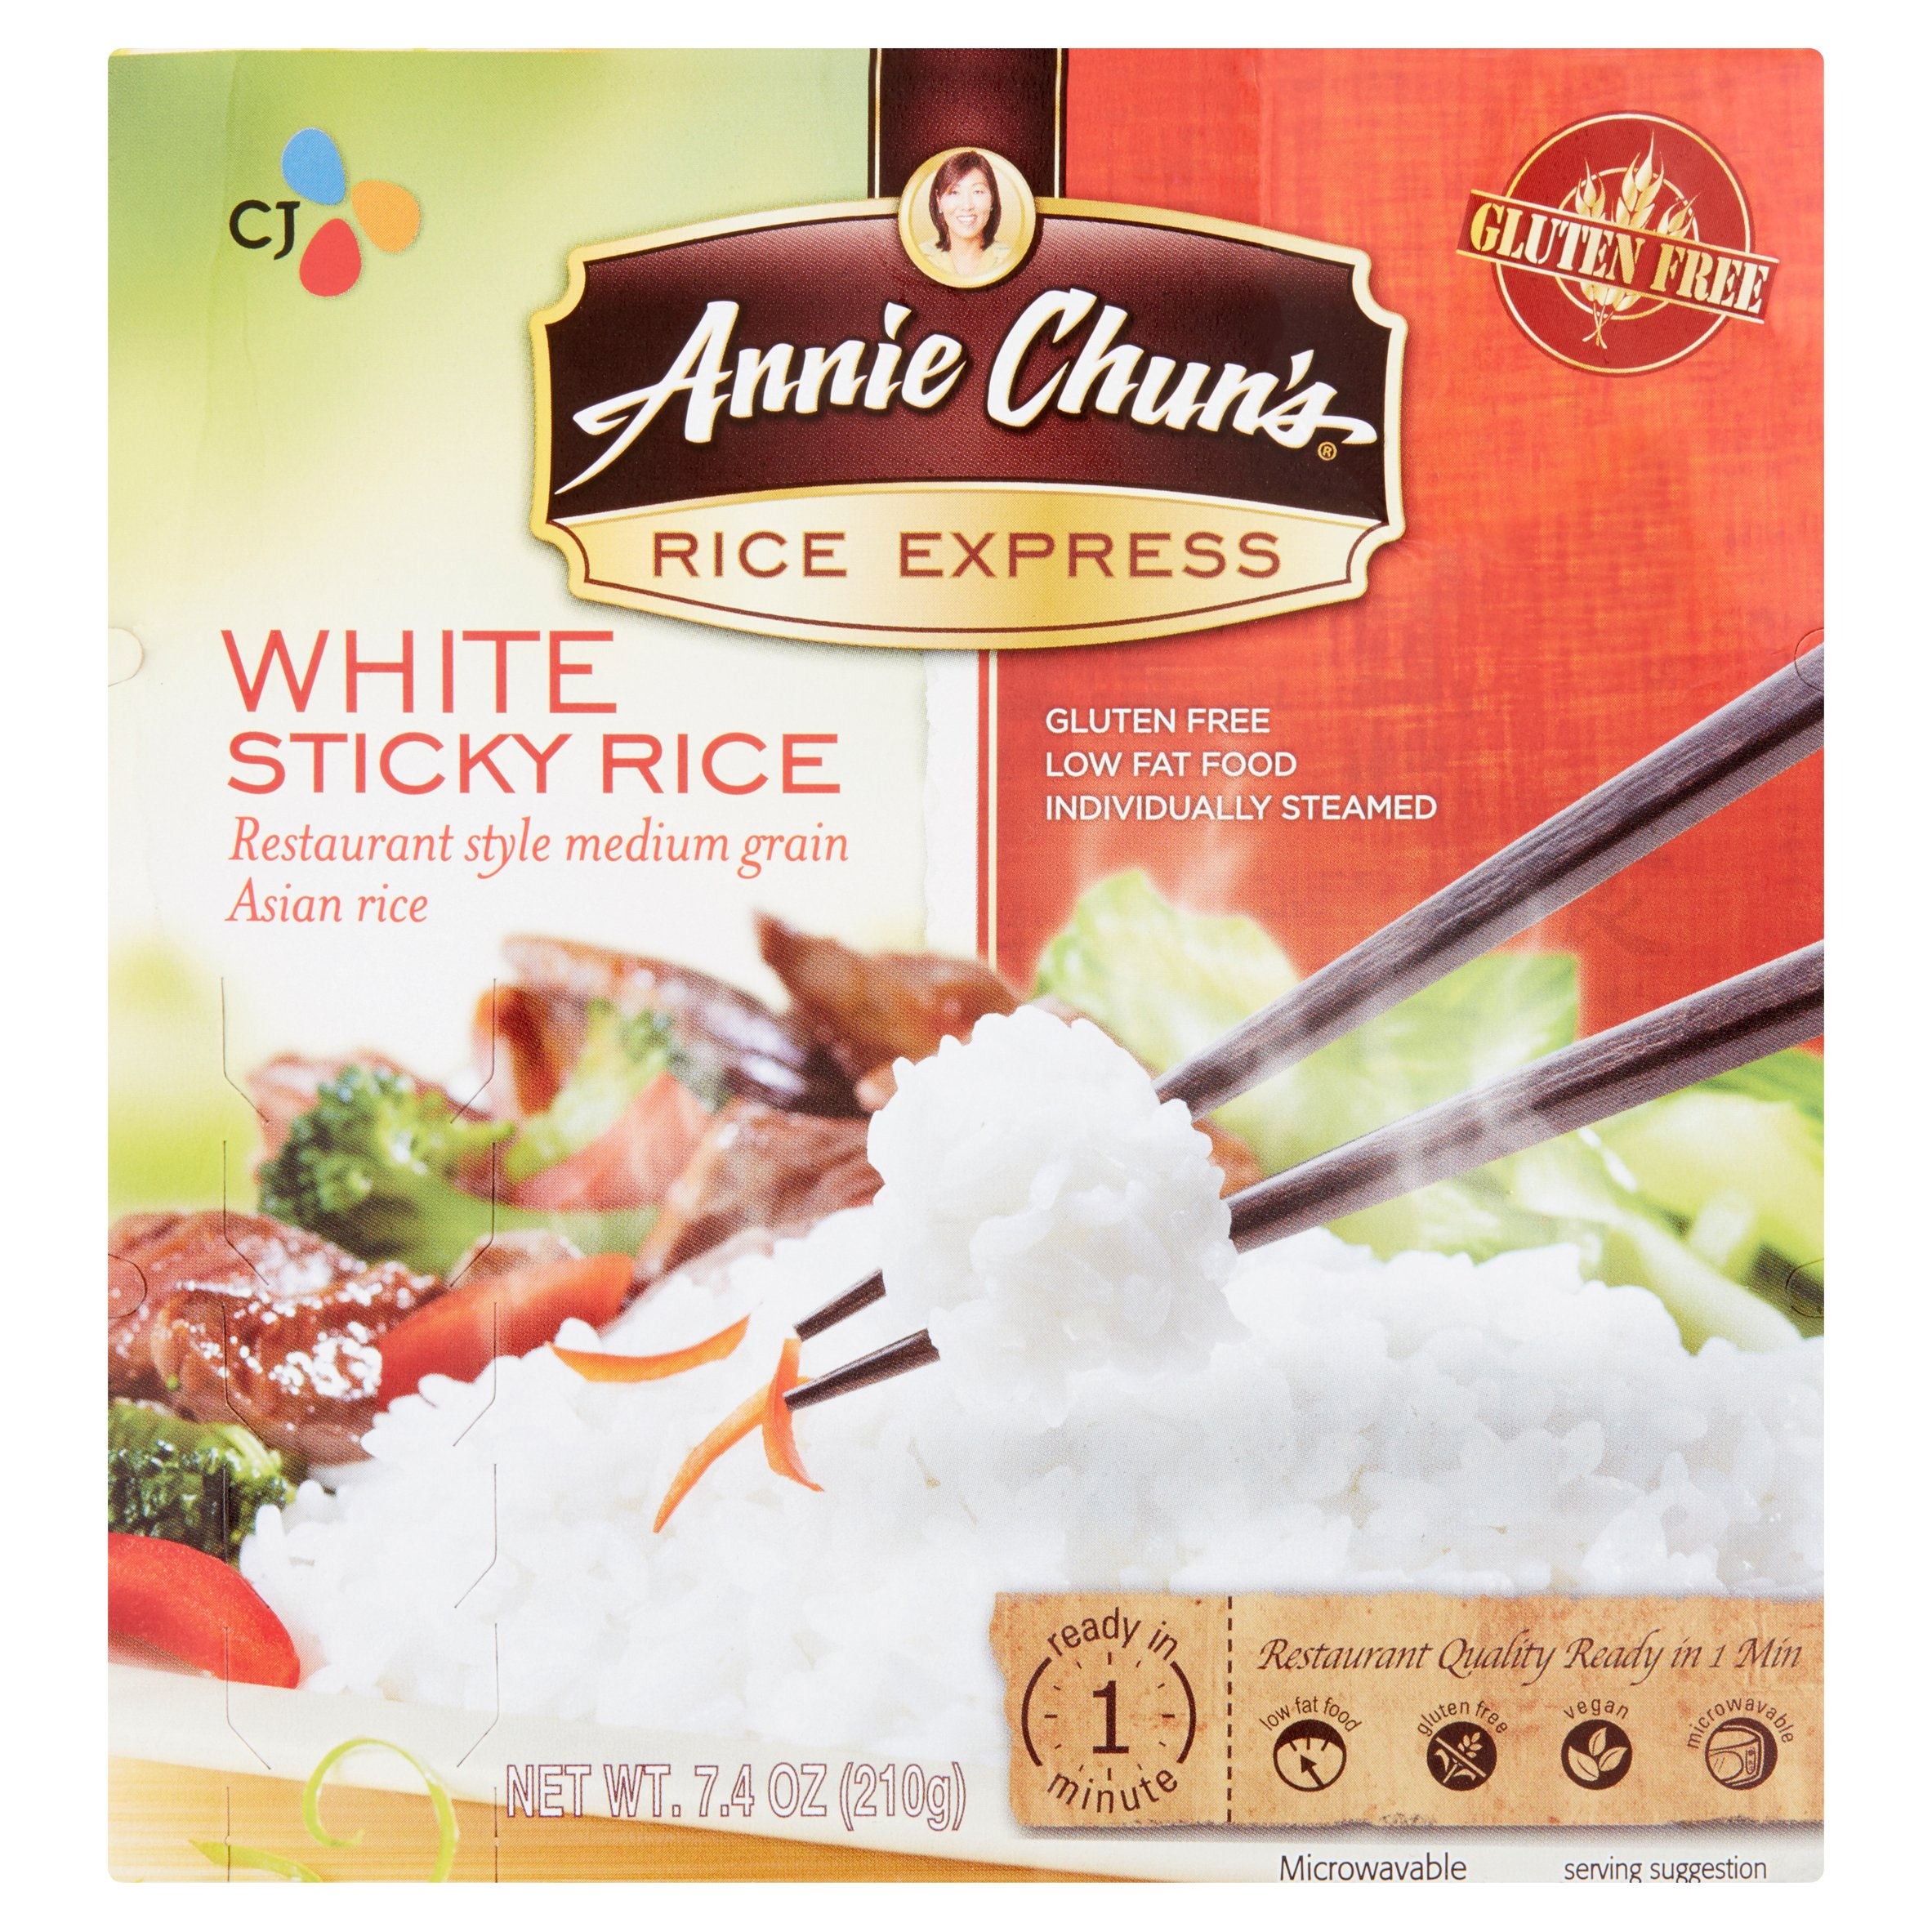 Annie Chun's Rice Express White Sticky Rice, 7.4 oz by CJ Foods, Inc.